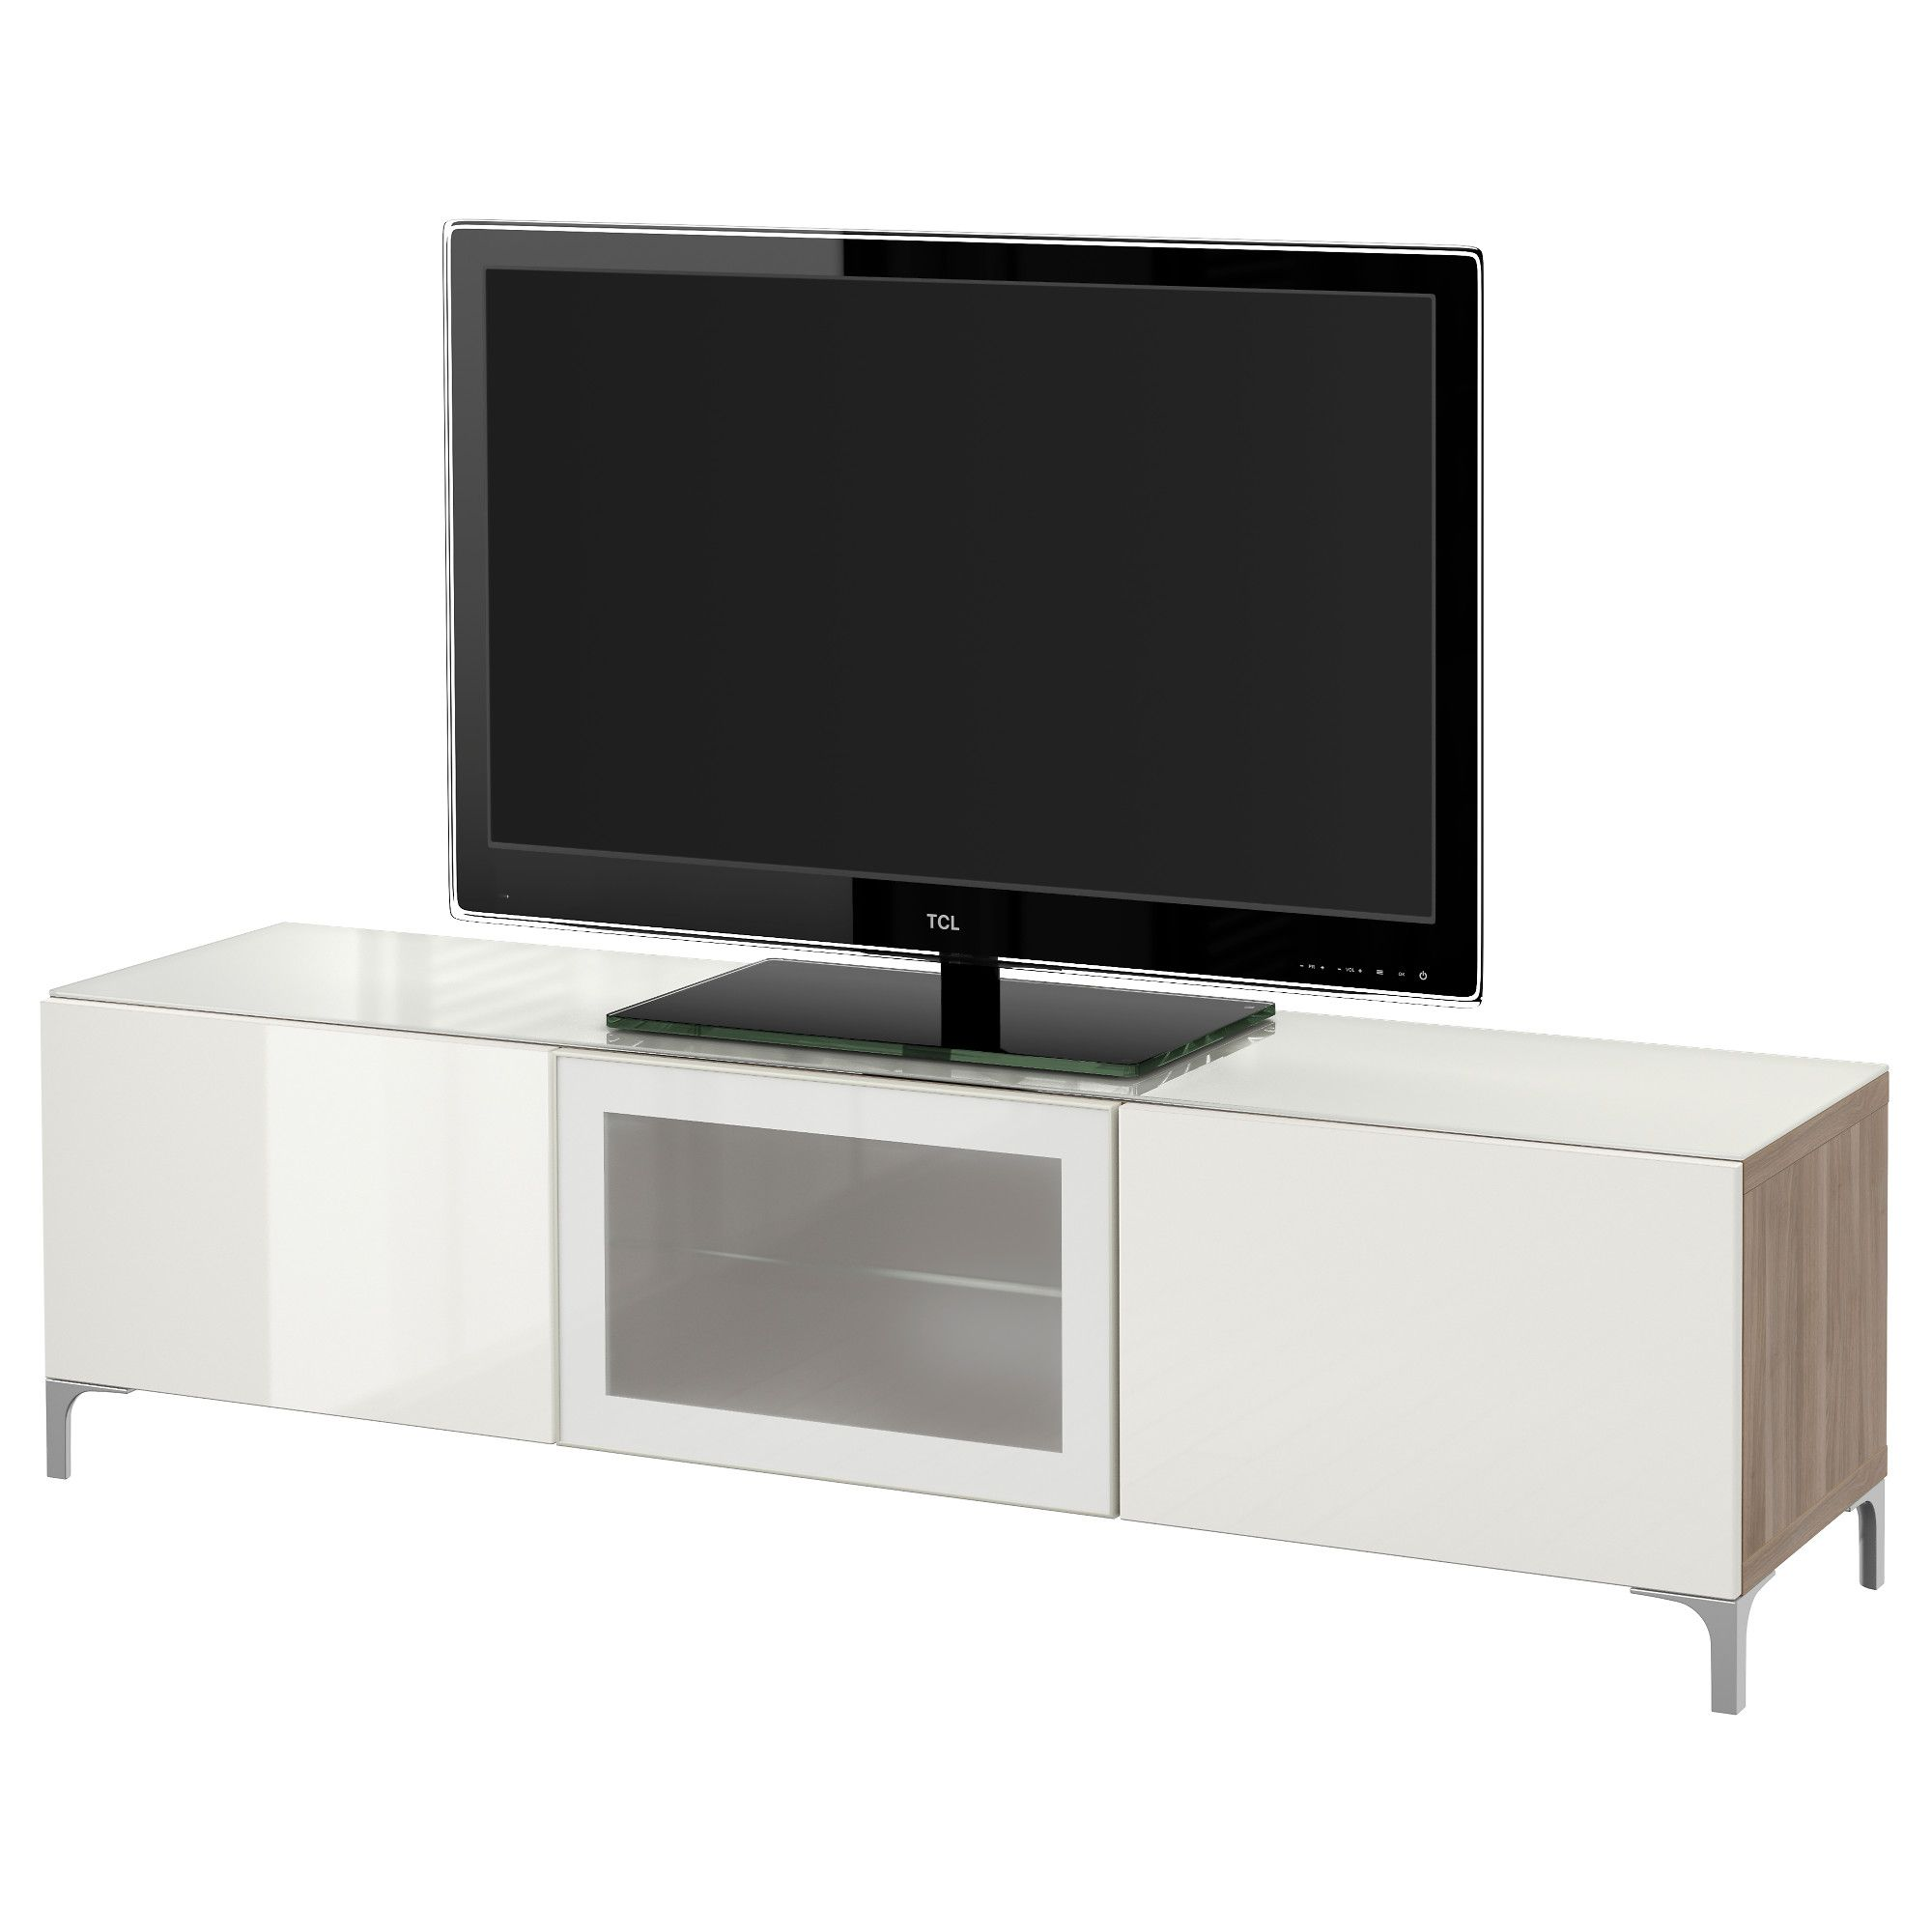 Hemnes Tv Bank Graubraun Bank Grau Trendy Grau Braun Mit Ikea Bucherregal Full Size Of